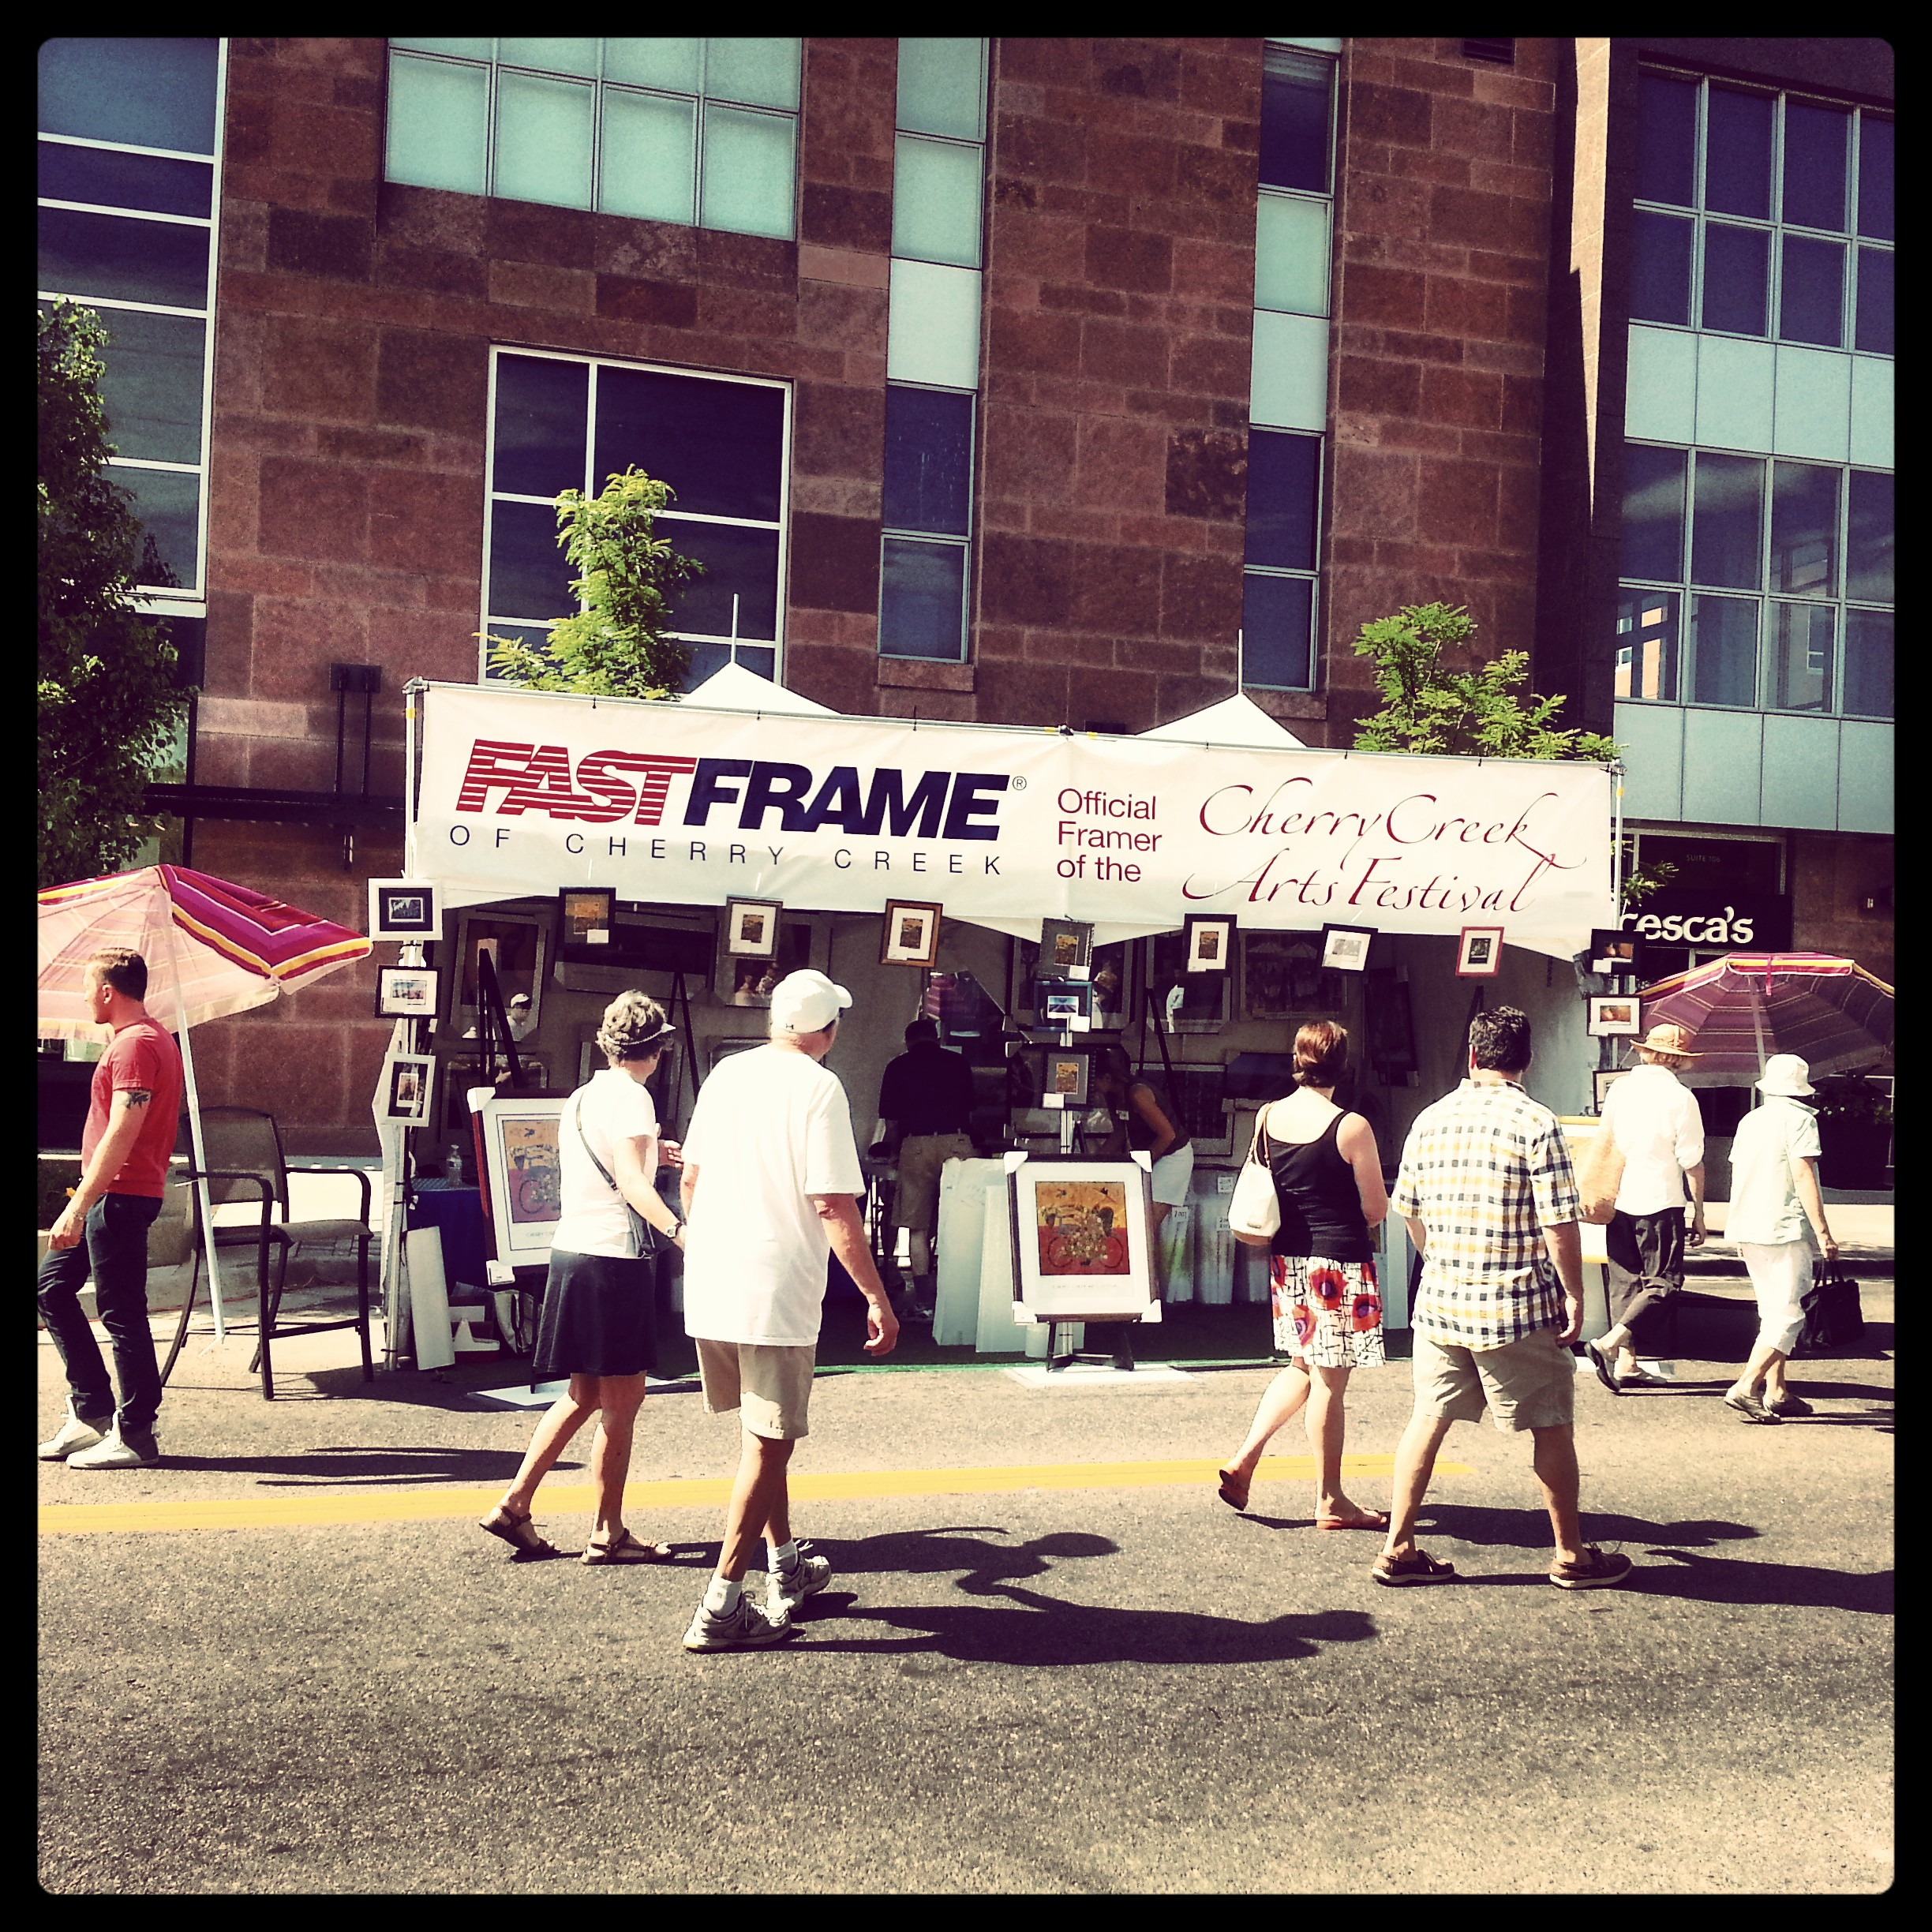 Cherry Creek Arts Festival | FastFrame of LoDo - Expert Picture Framing